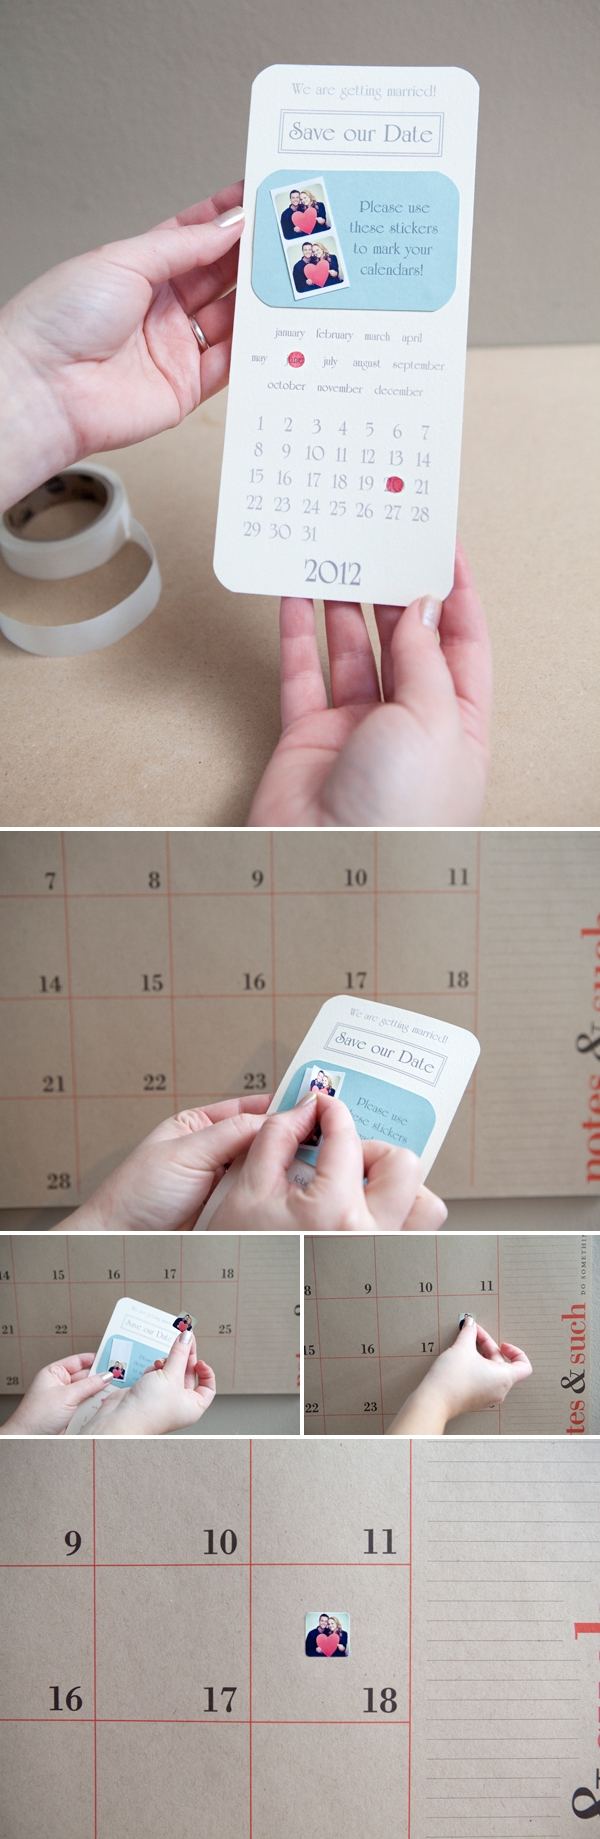 Amazing save the date idea